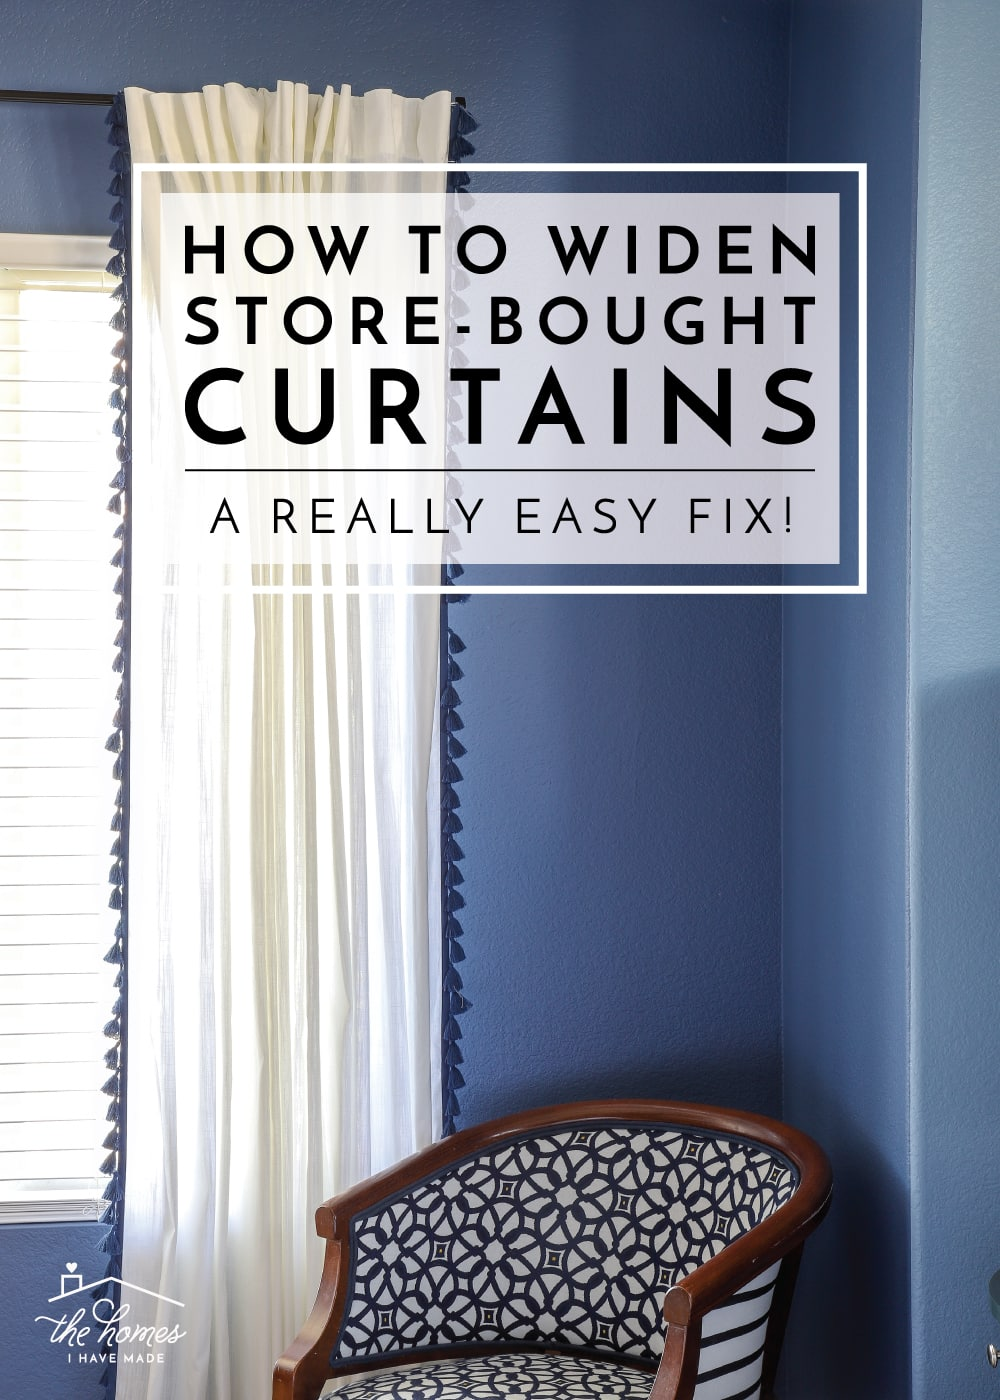 How to Widen Store-Bought Curtains